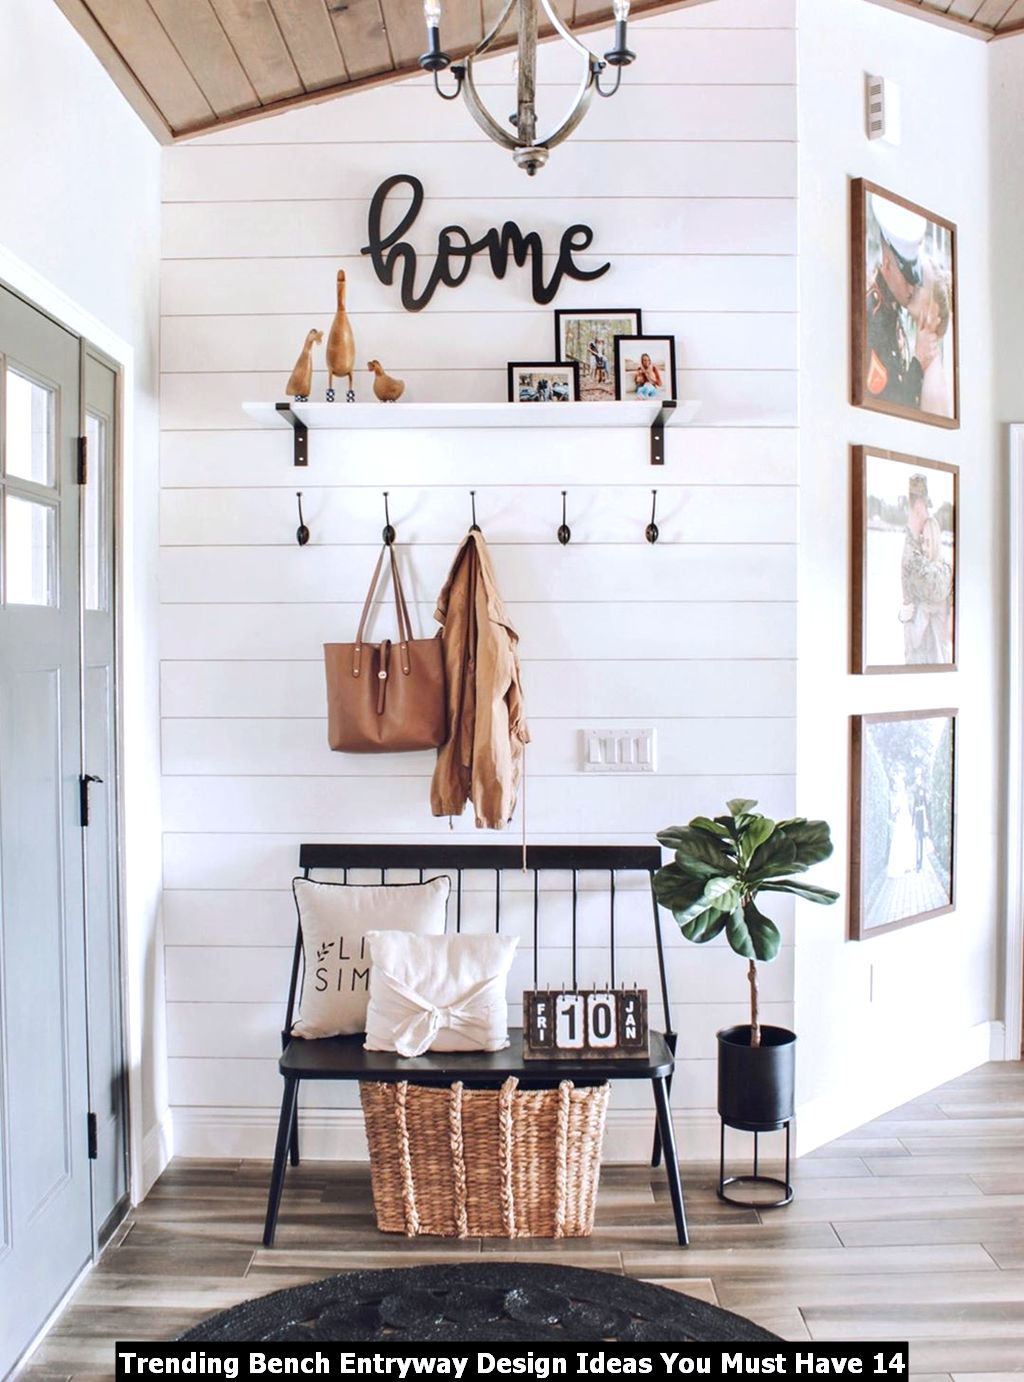 Trending Bench Entryway Design Ideas You Must Have 14